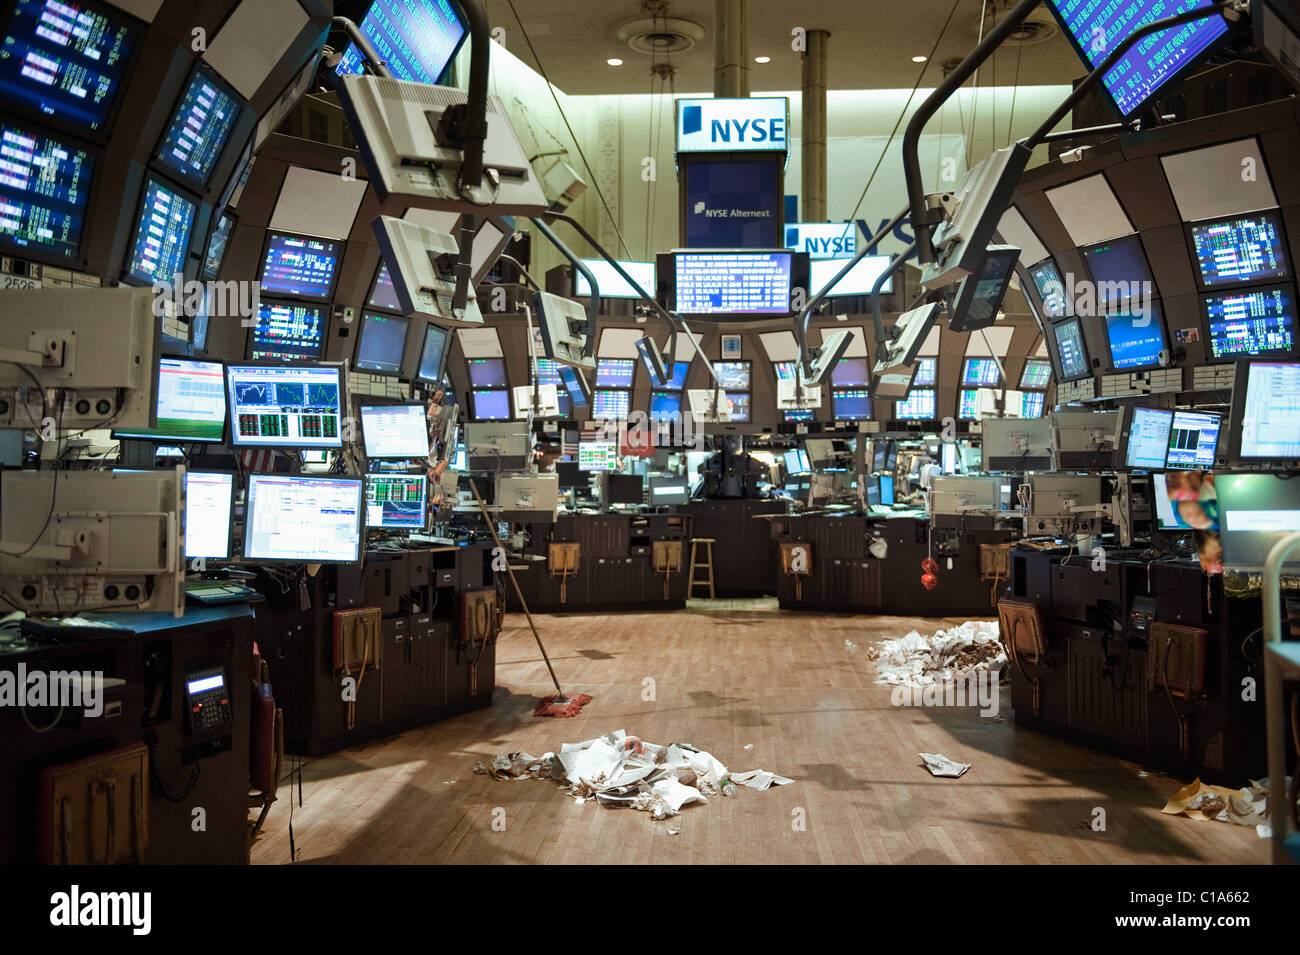 the empty trading floor of the nyse after the market has closed